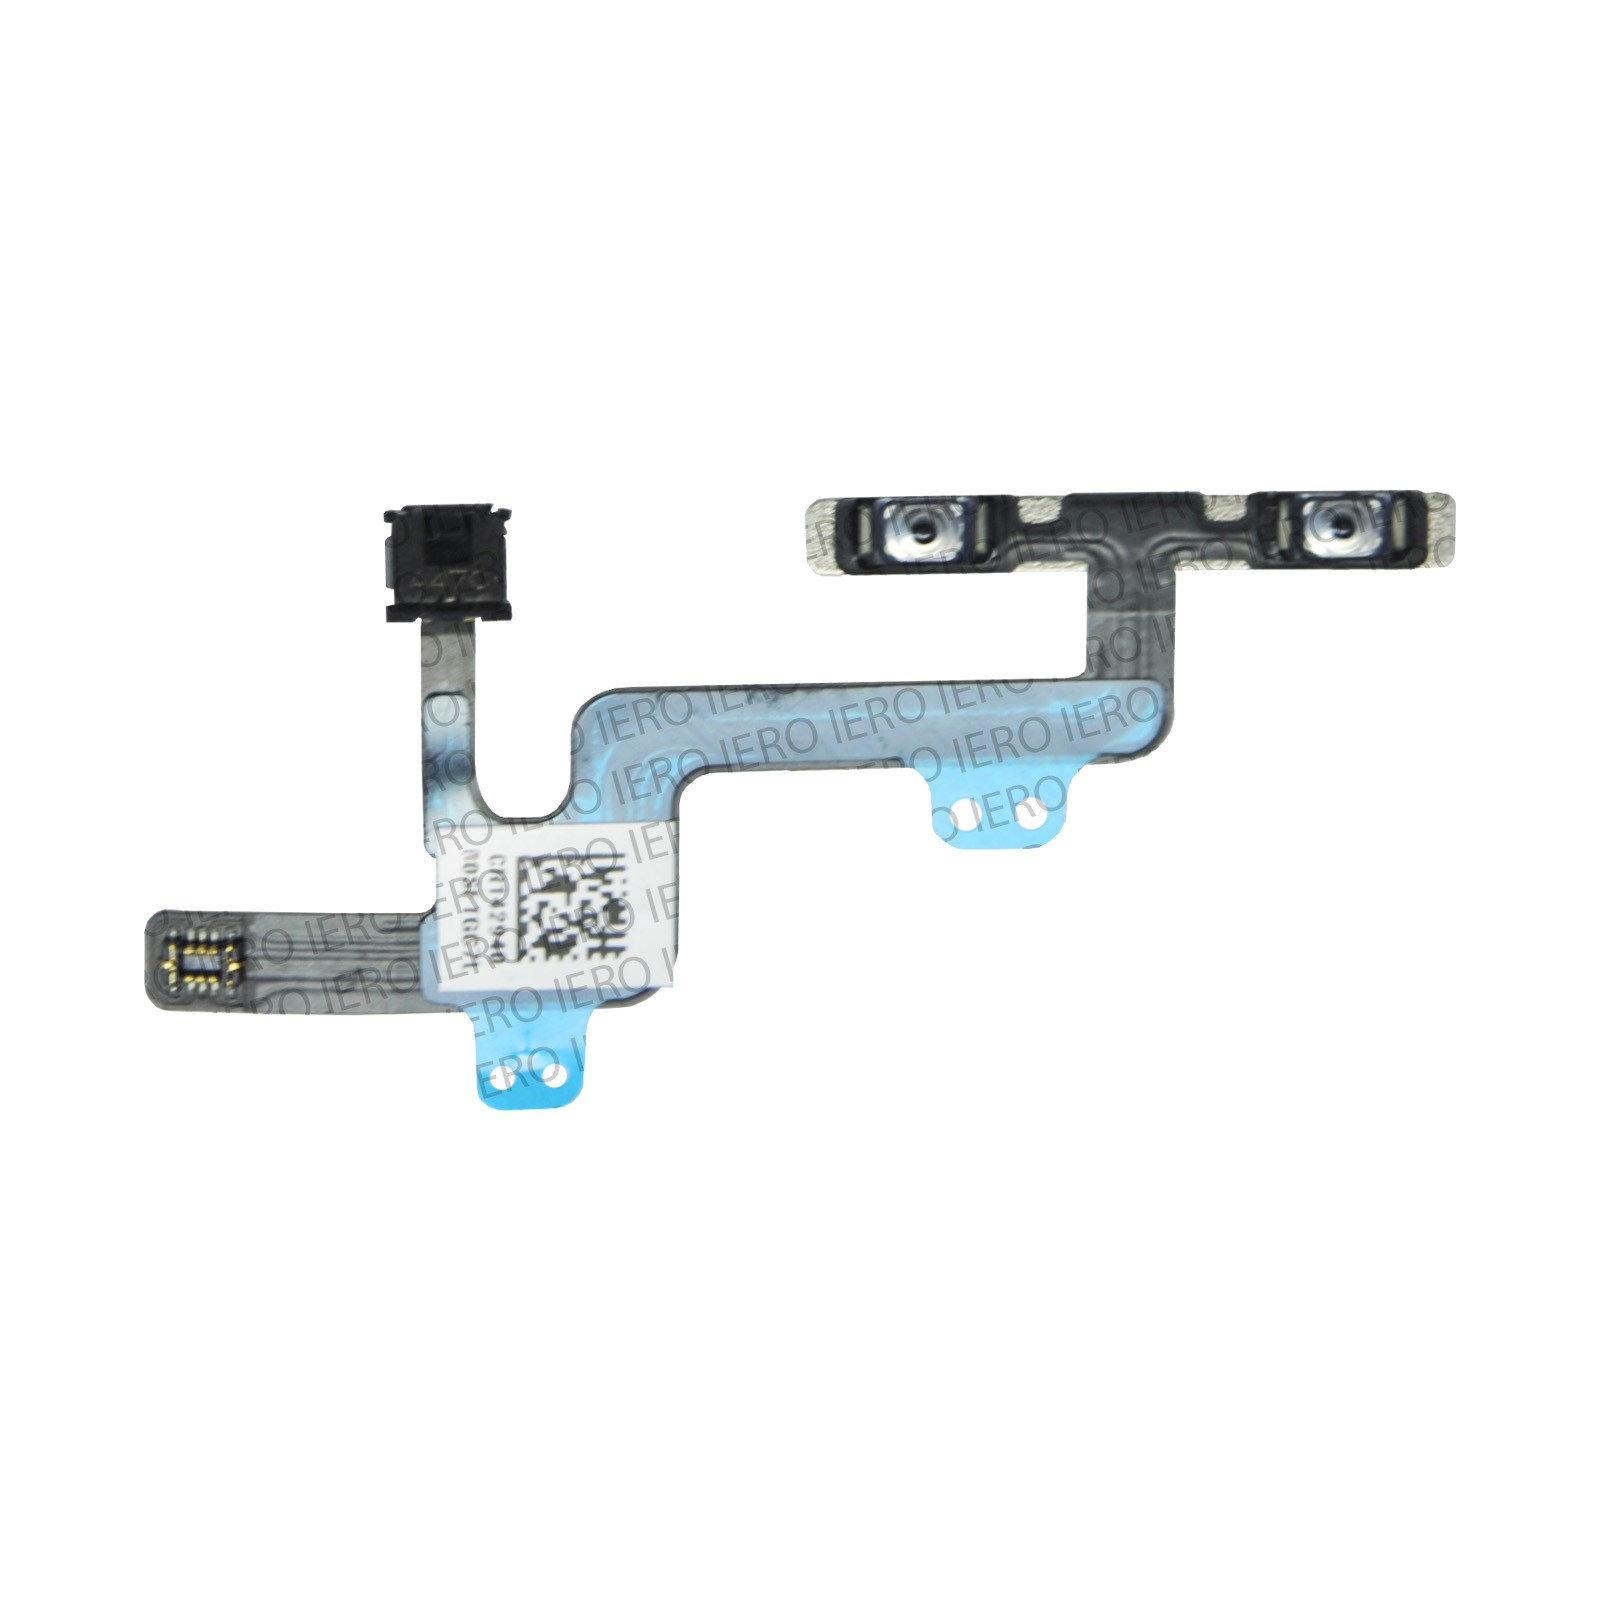 Volume Buttons Mute Switch Flex Cable Replacement for iPhone 6